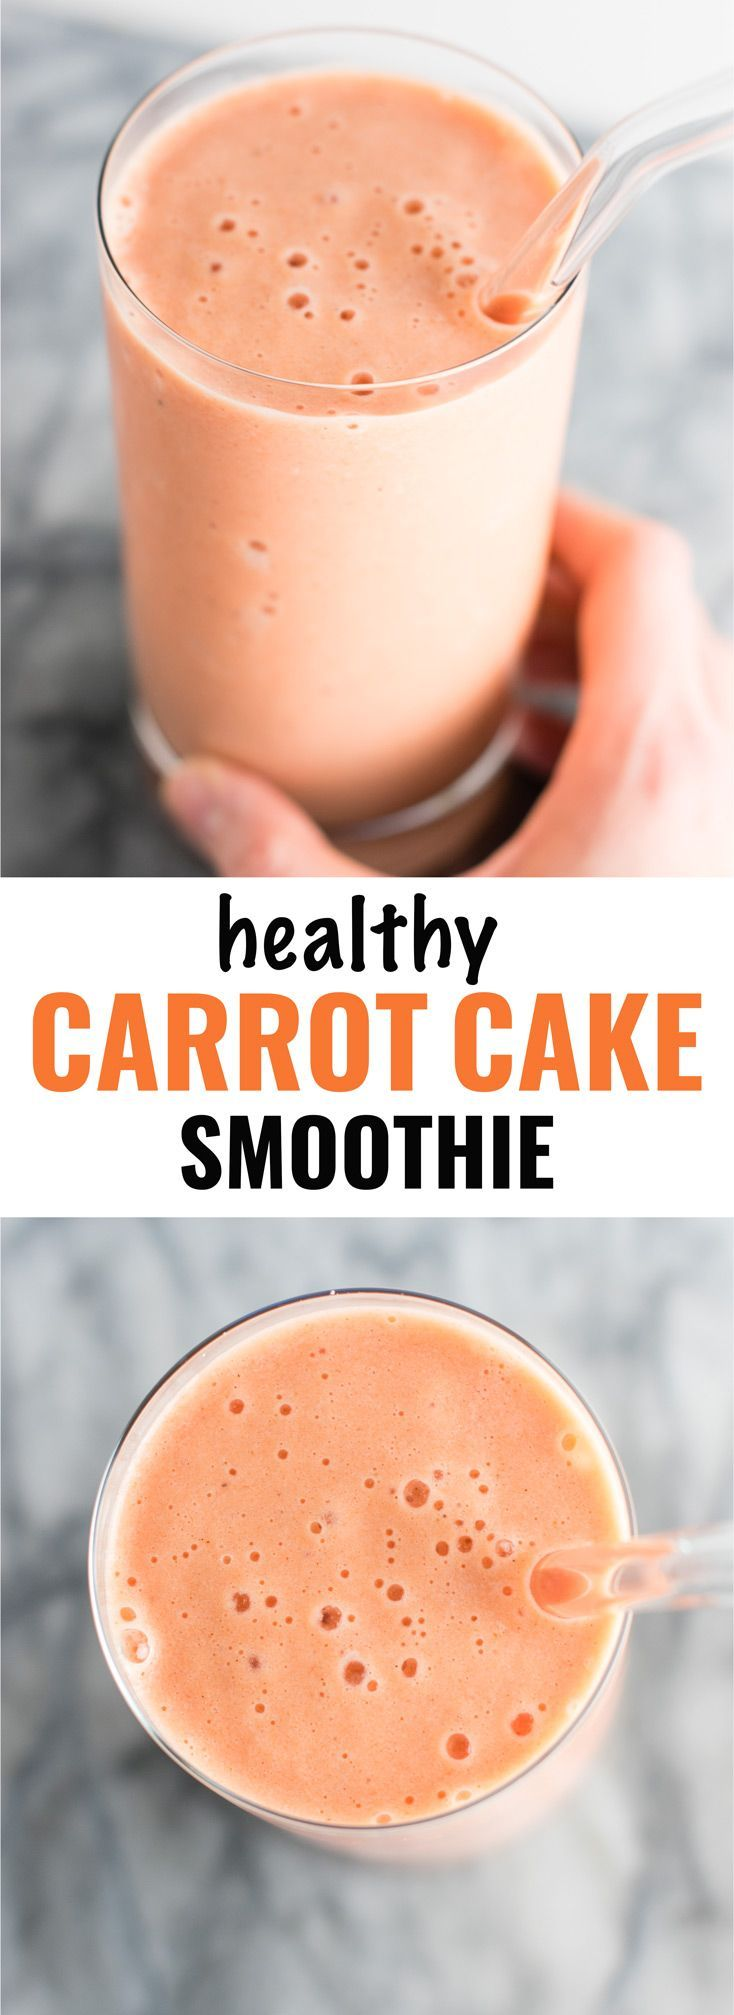 Healthy carrot cake smoothie recipe. Breakfast? Dessert? It can be either!